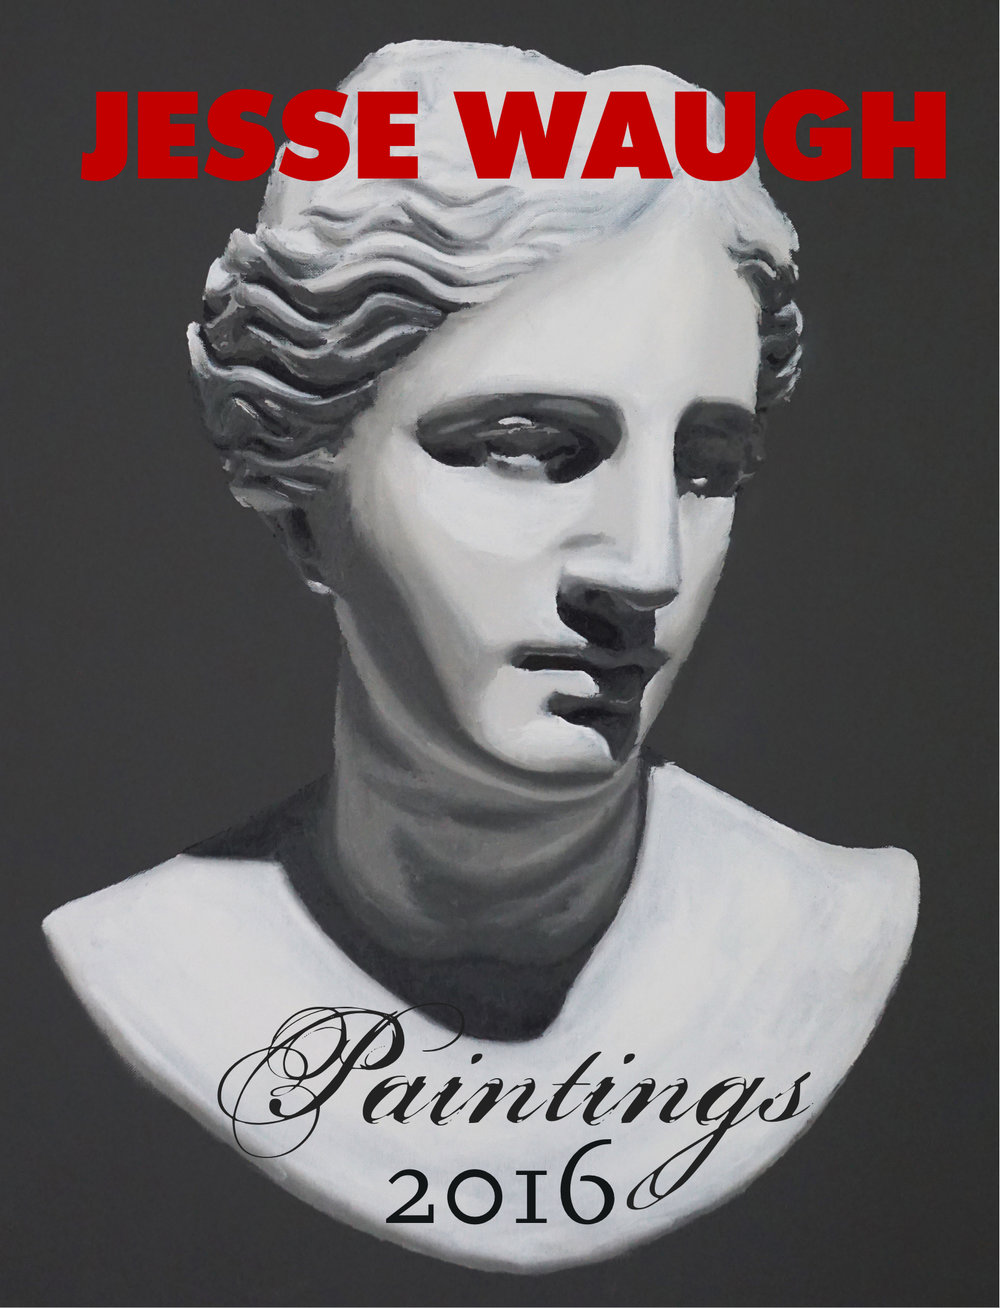 JESSE-WAUGH-Paintings-2016.jpg